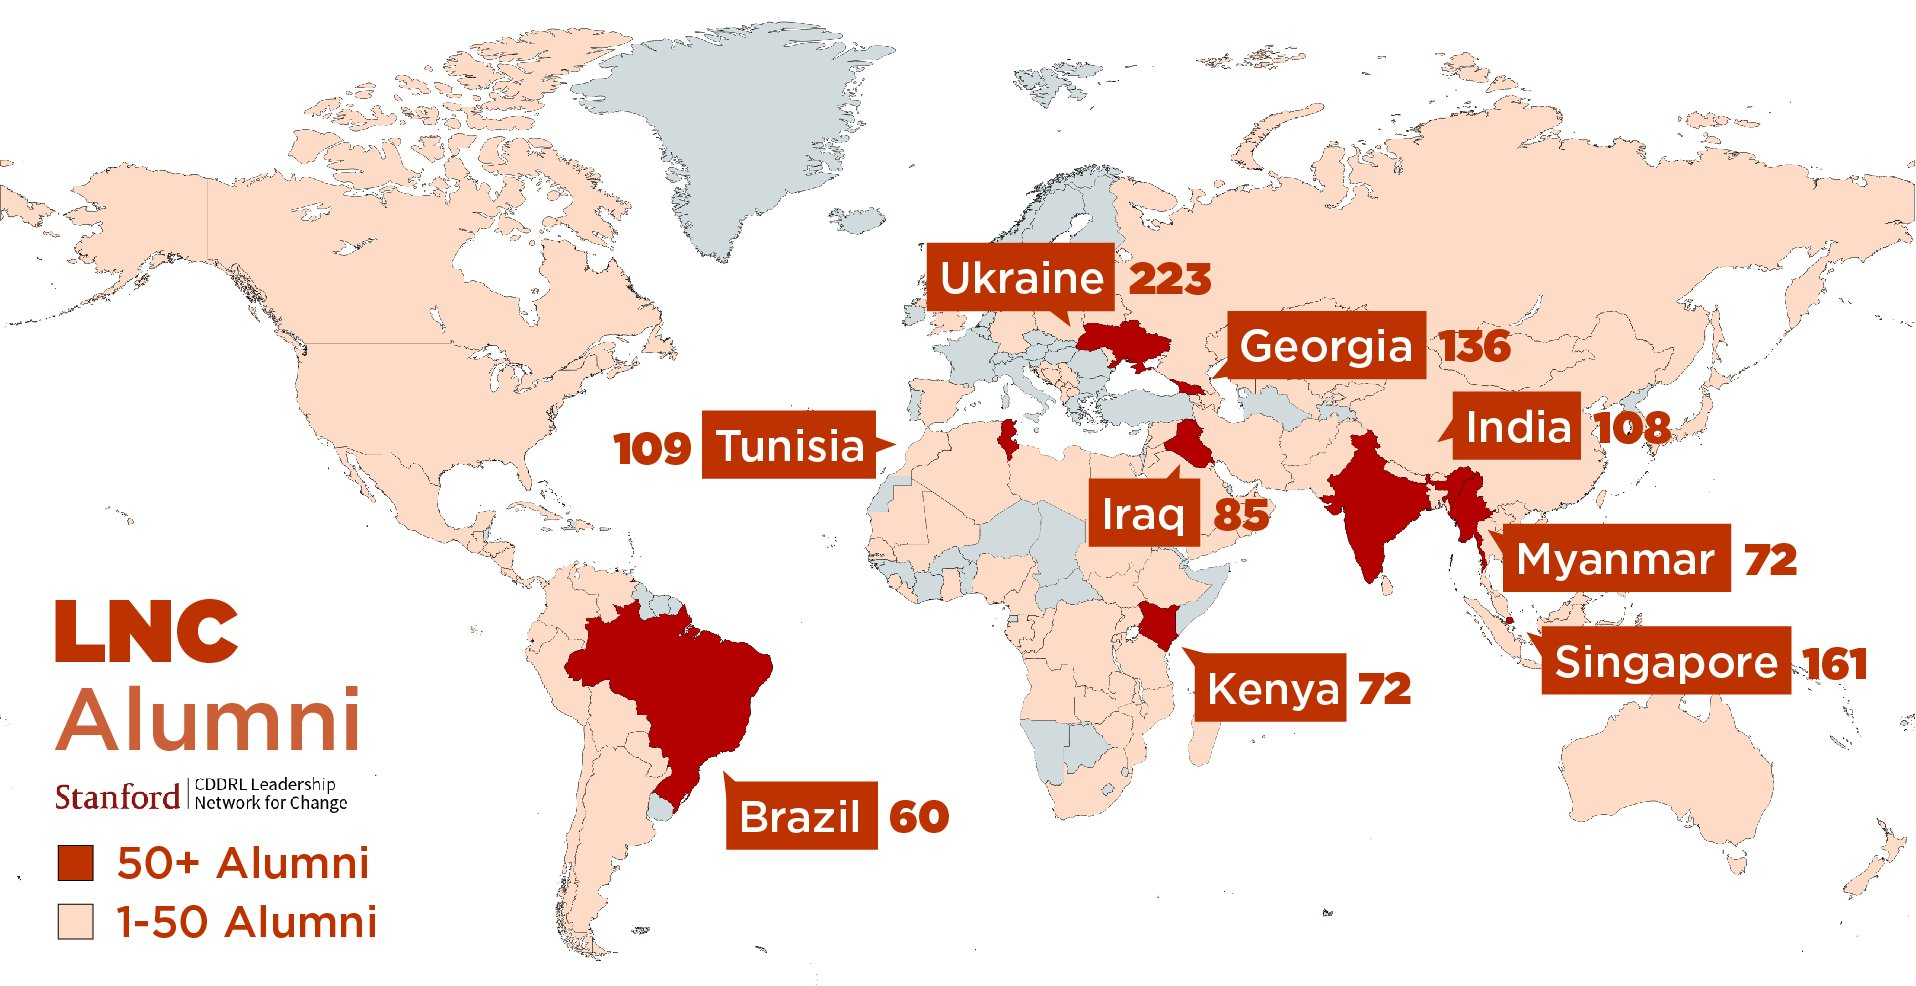 Alumni by country map